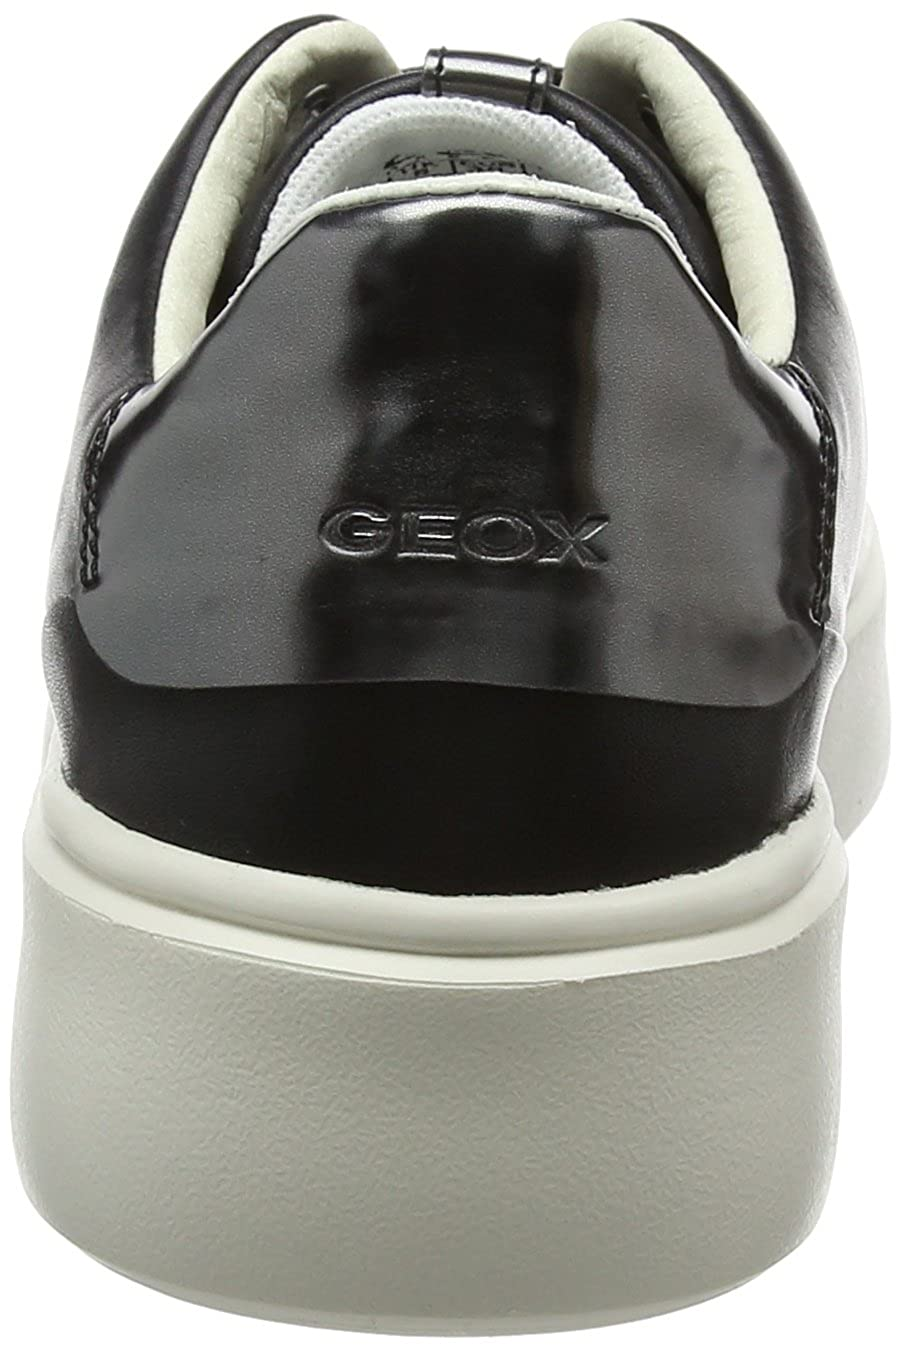 Geox DD Nhenbus A, Sneakers Basses Femme